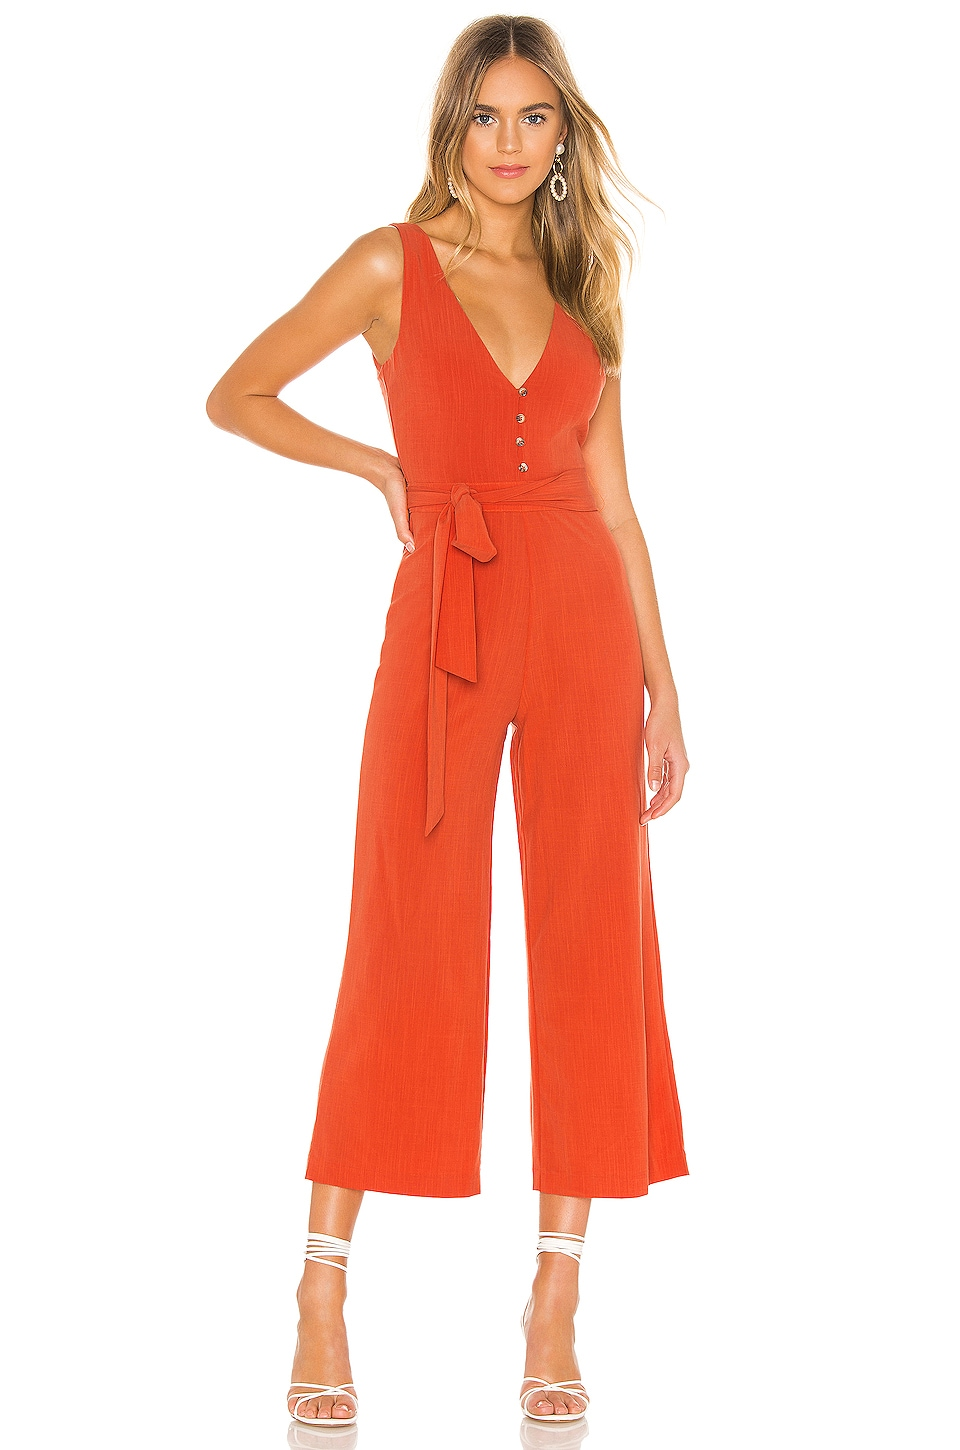 Privacy Please Melodie Jumpsuit in Red Orange